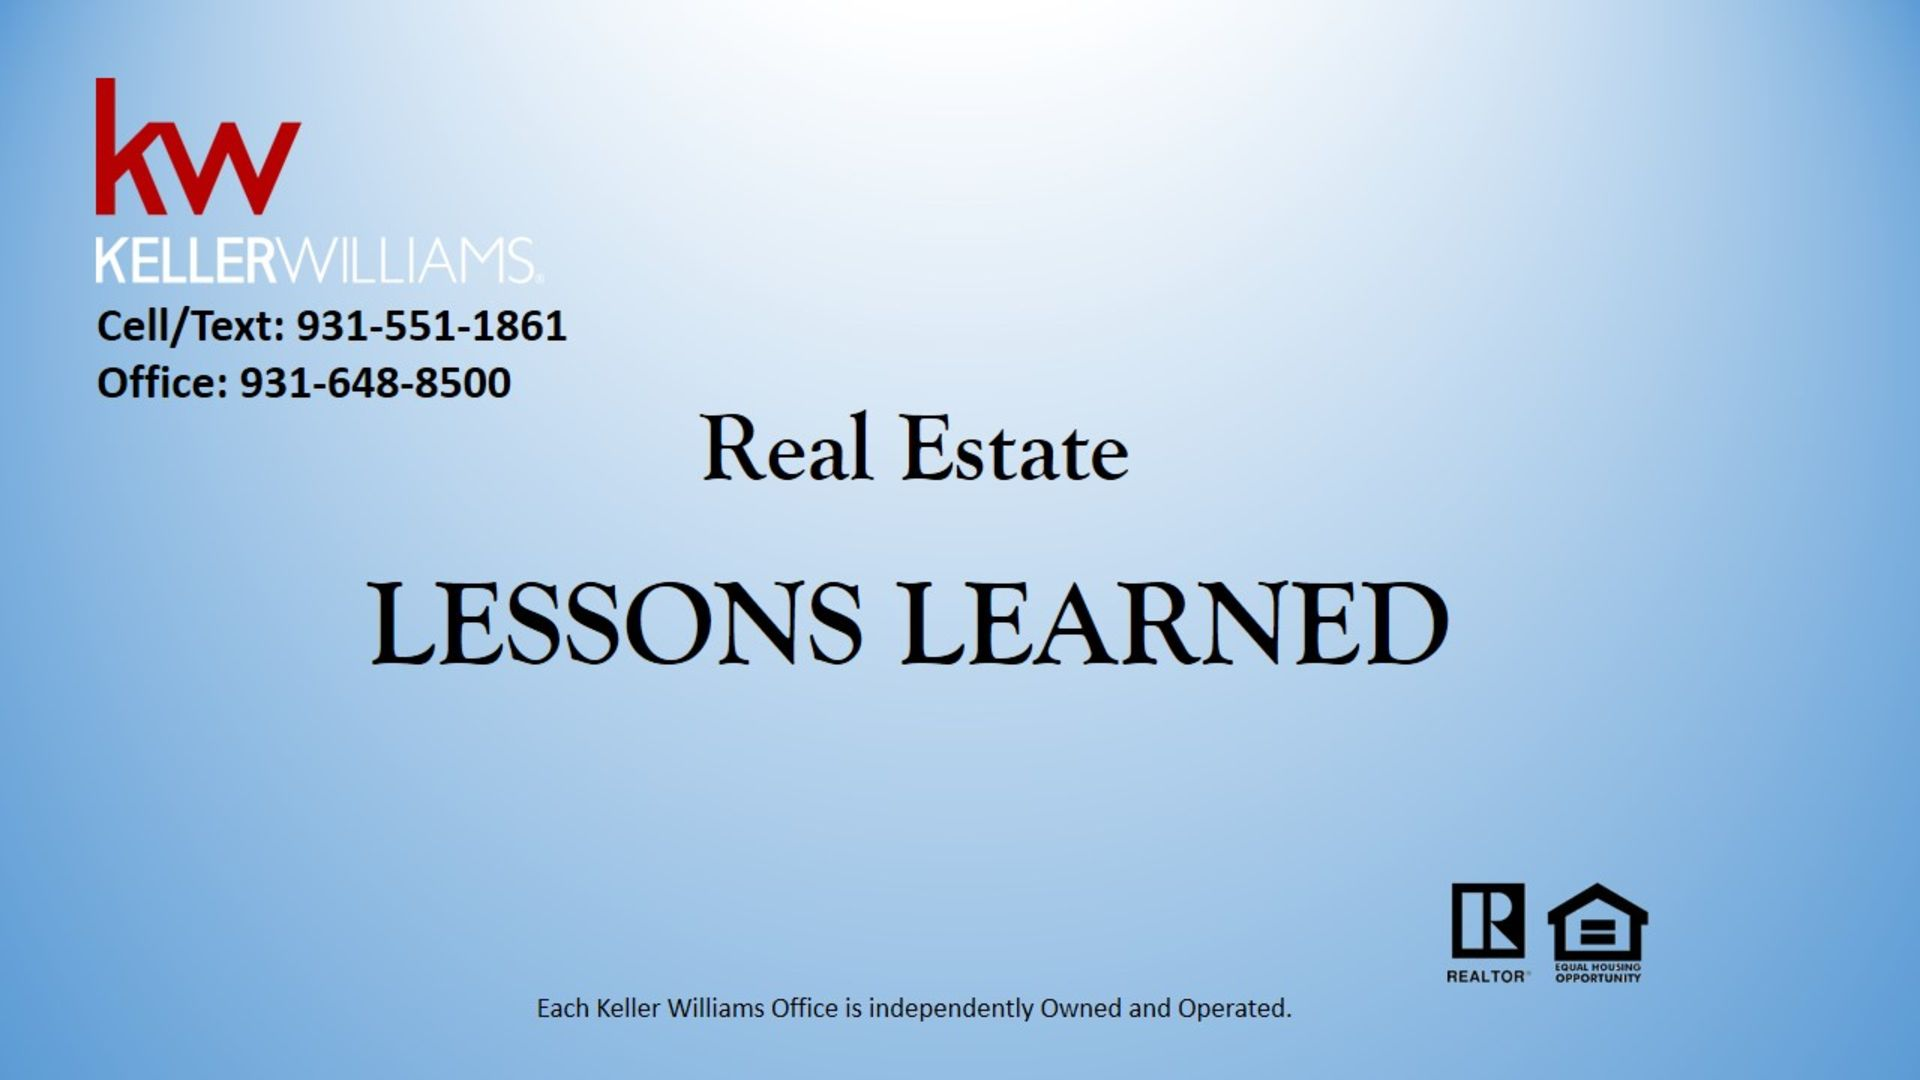 Lessons Learned in Real Estate